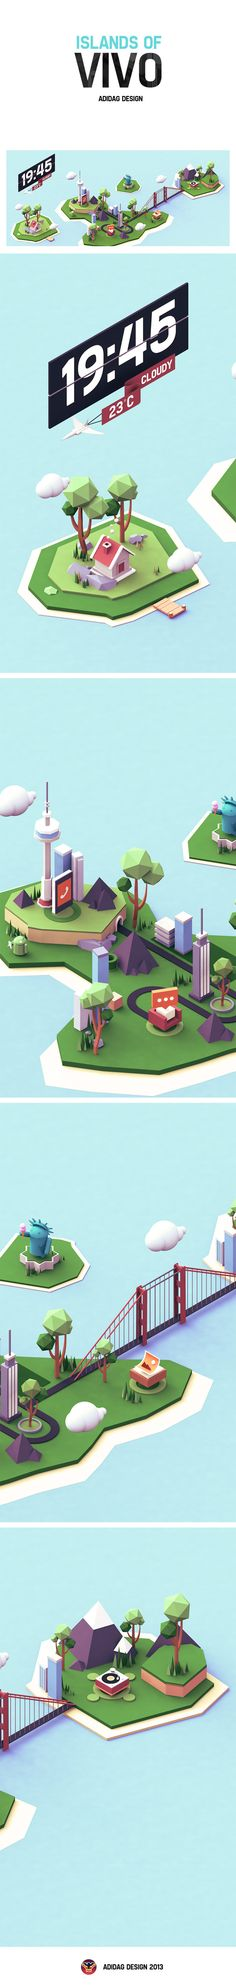 Islands of VIVO by Liu Yuantao -ADIDAG, via Behance